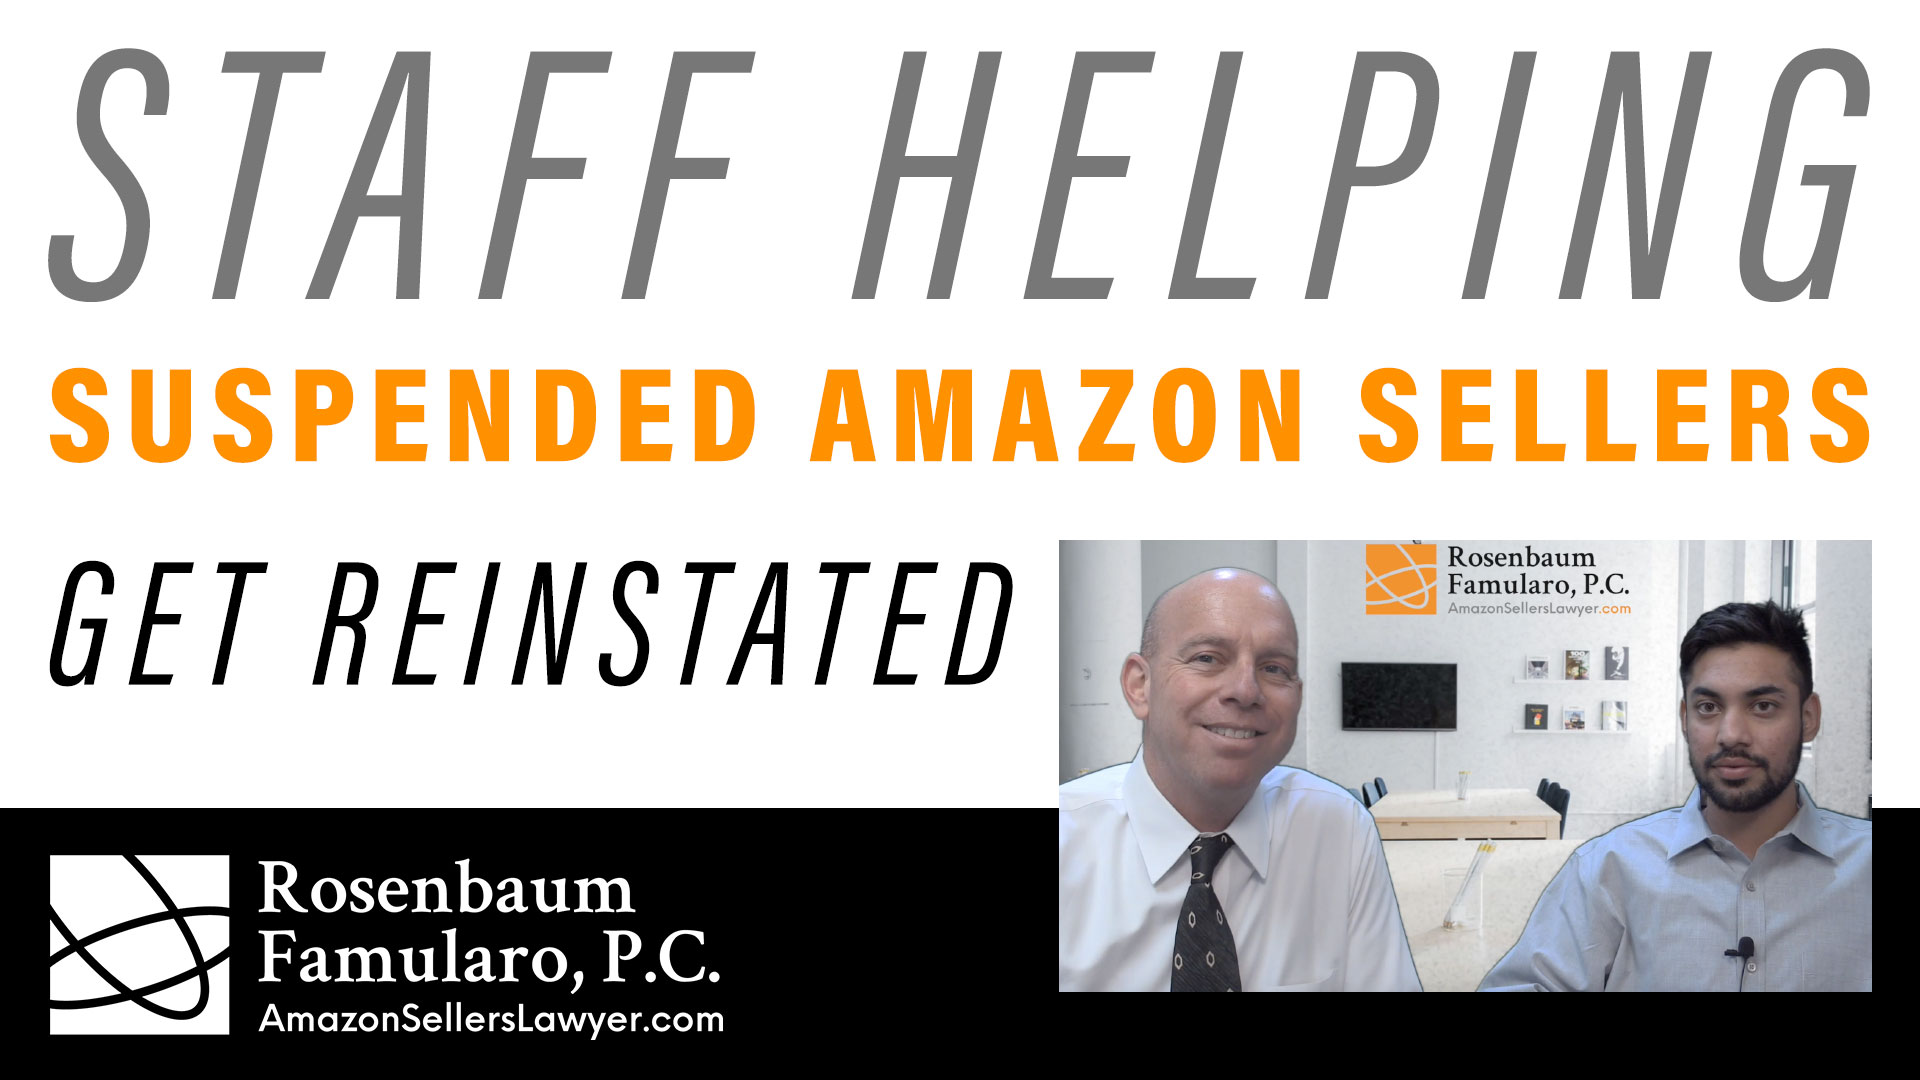 helping Amazon sellers get reinstated